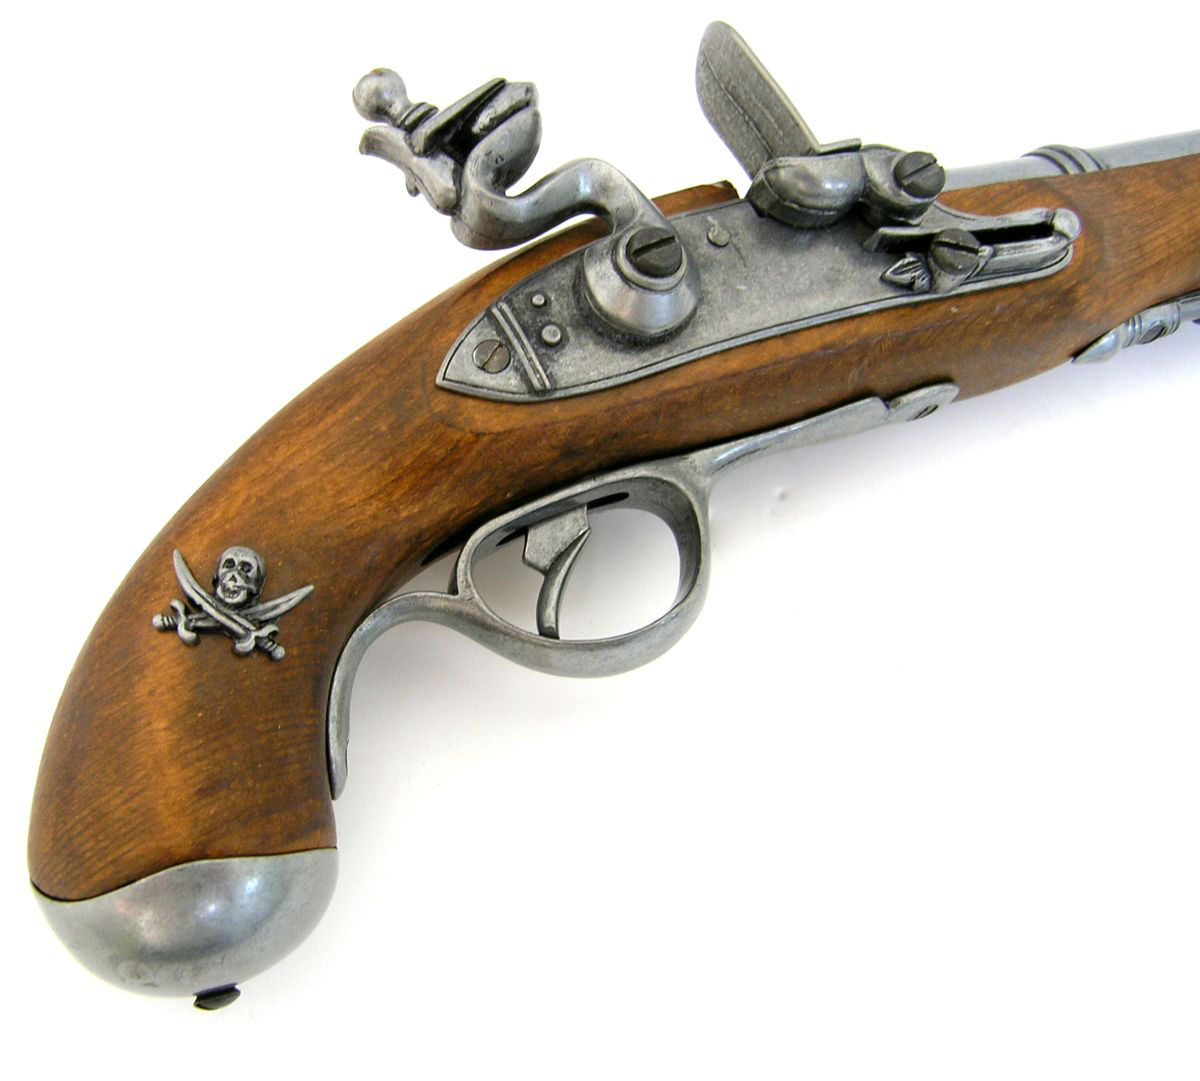 Pirate Blunderbuss Replica Pistol